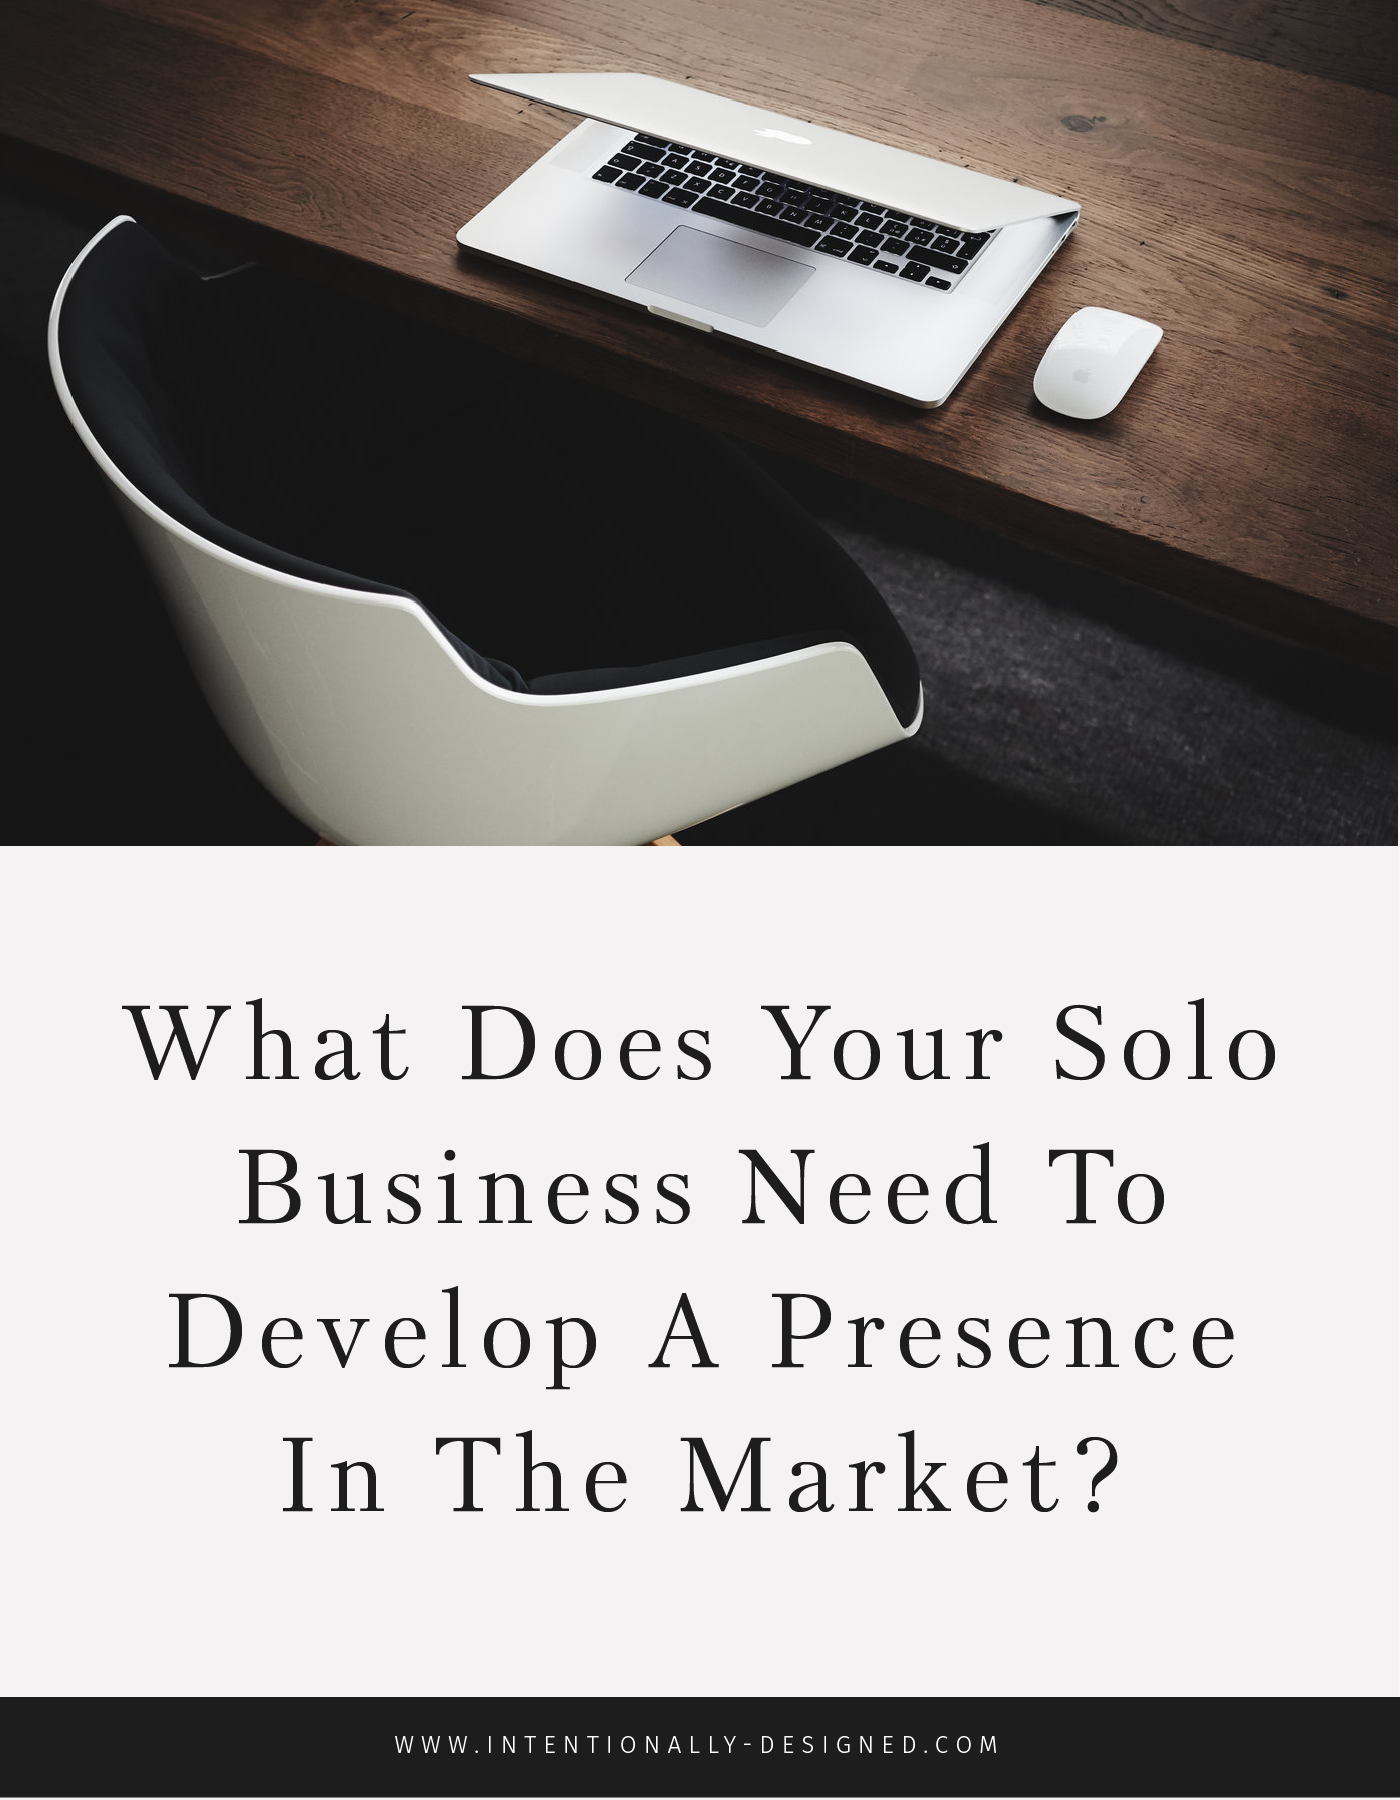 What Does Your Solo Business Need To Develop A Presence In The Market?